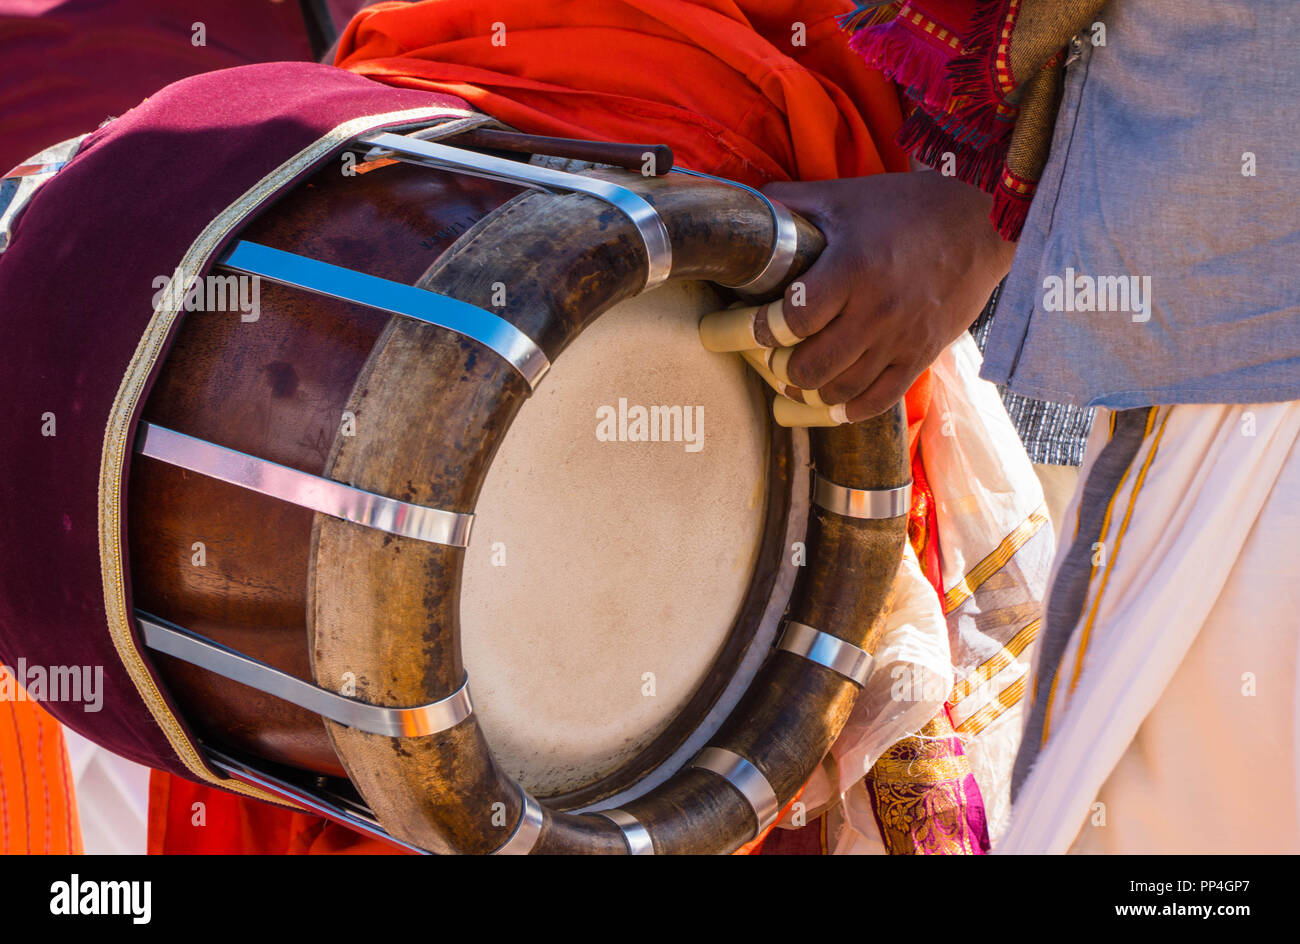 Thavil a traditional barrel shaped musical instrument used